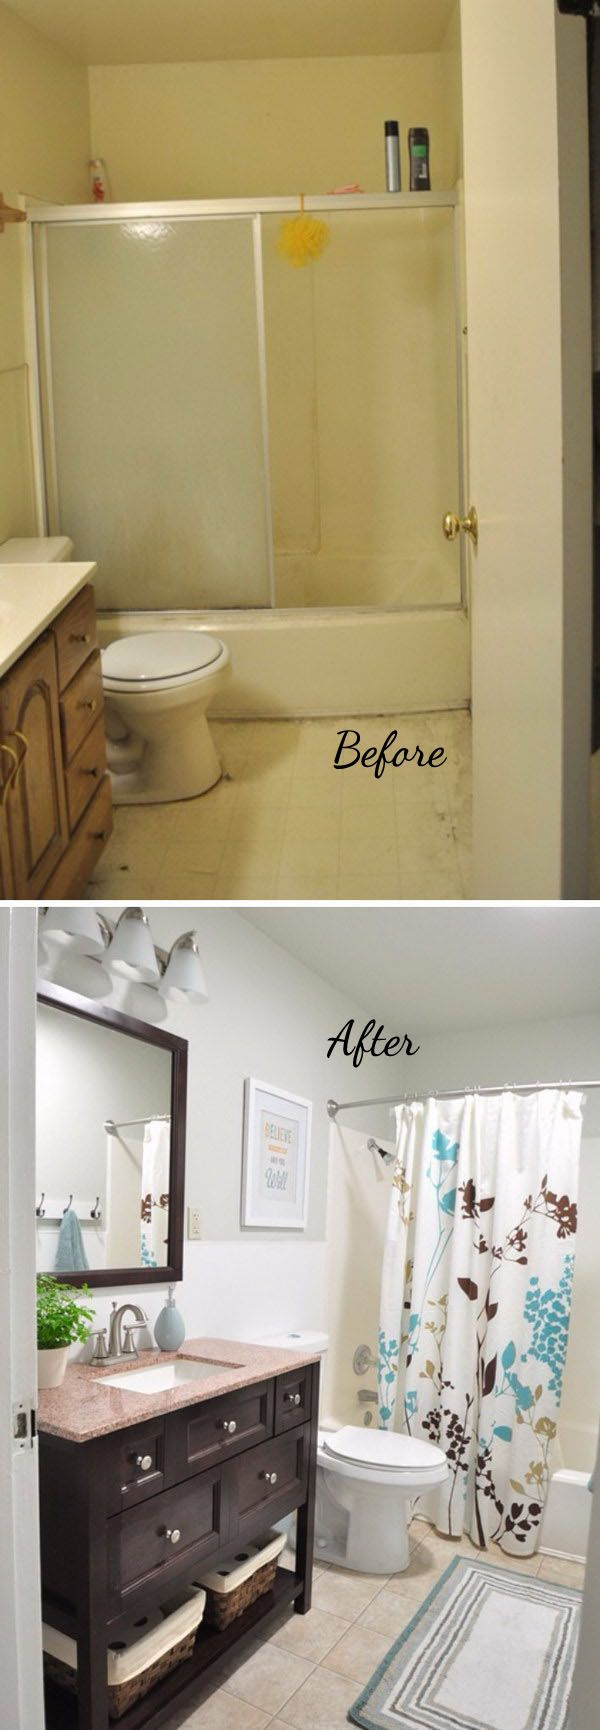 37 Small Bathroom Makeovers Before And After Pics Home Magez Diy Bathroom Remodel Mobile Home Bathroom Remodeling Mobile Homes Small bathroom mobile home bathroom